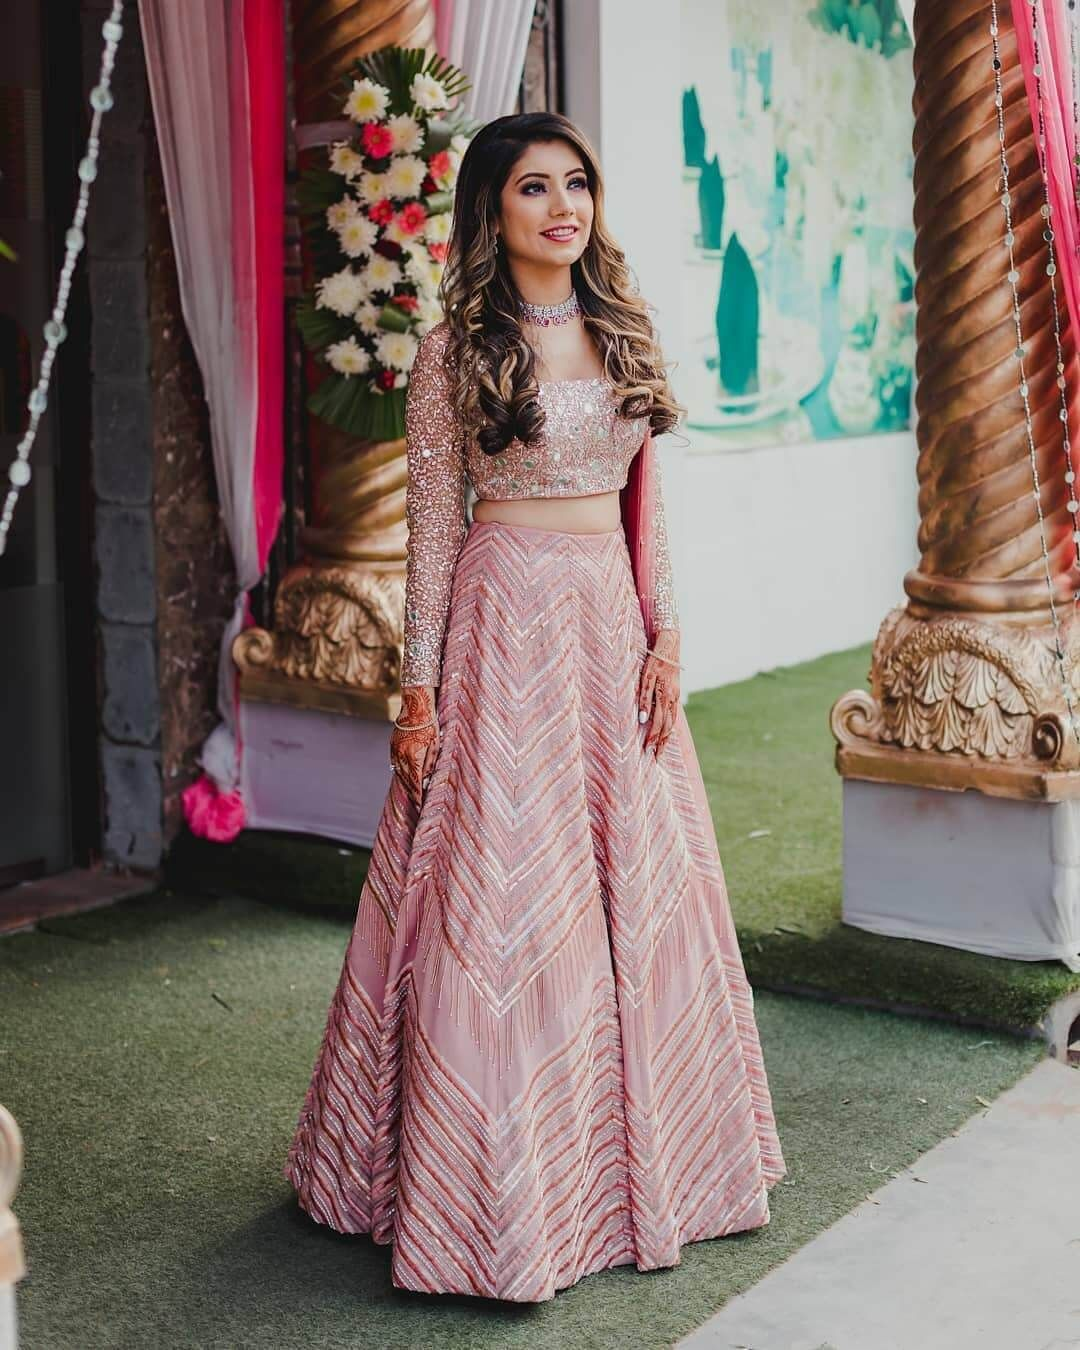 Trending Shades Of Metallic Lehengas For Brides To Be In 2020 Wedding Dresses For Girls Indian Fashion Dresses Indian Gowns Dresses